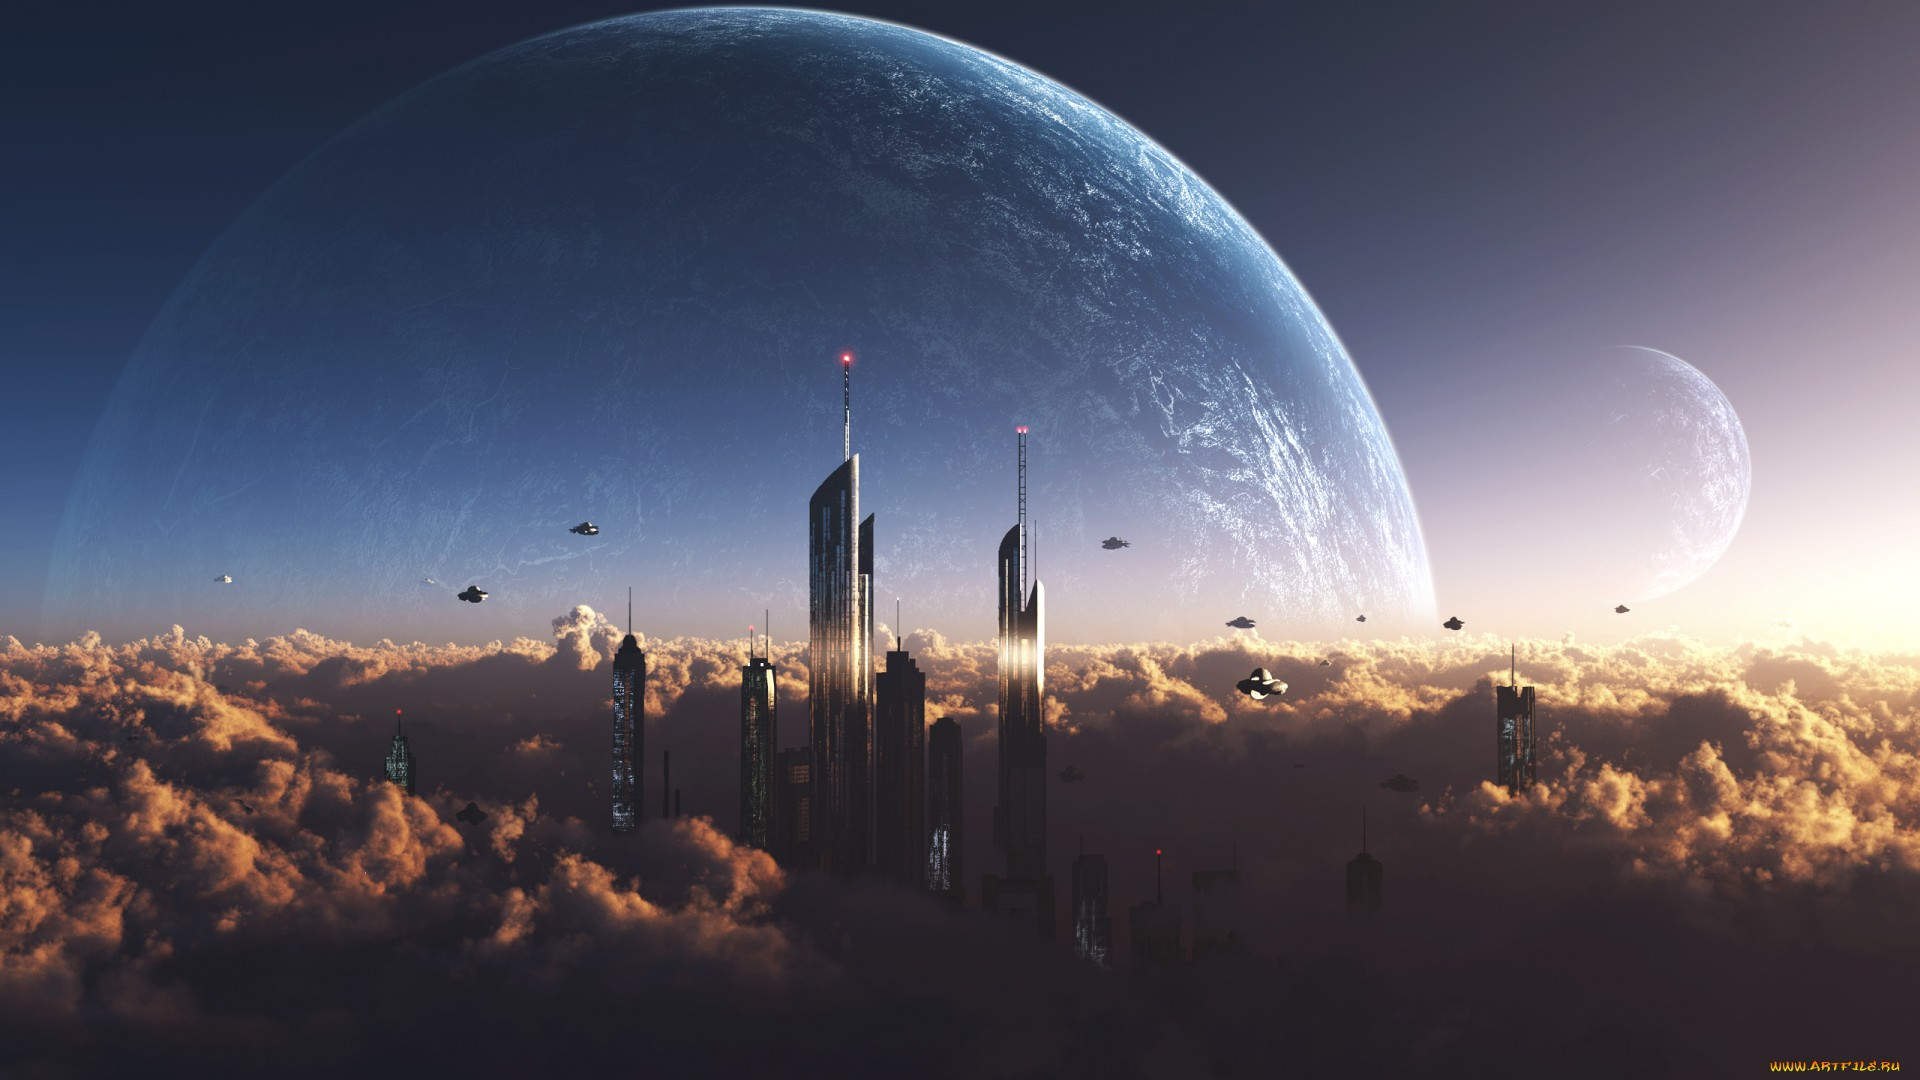 sci fi cities on other planets - photo #39